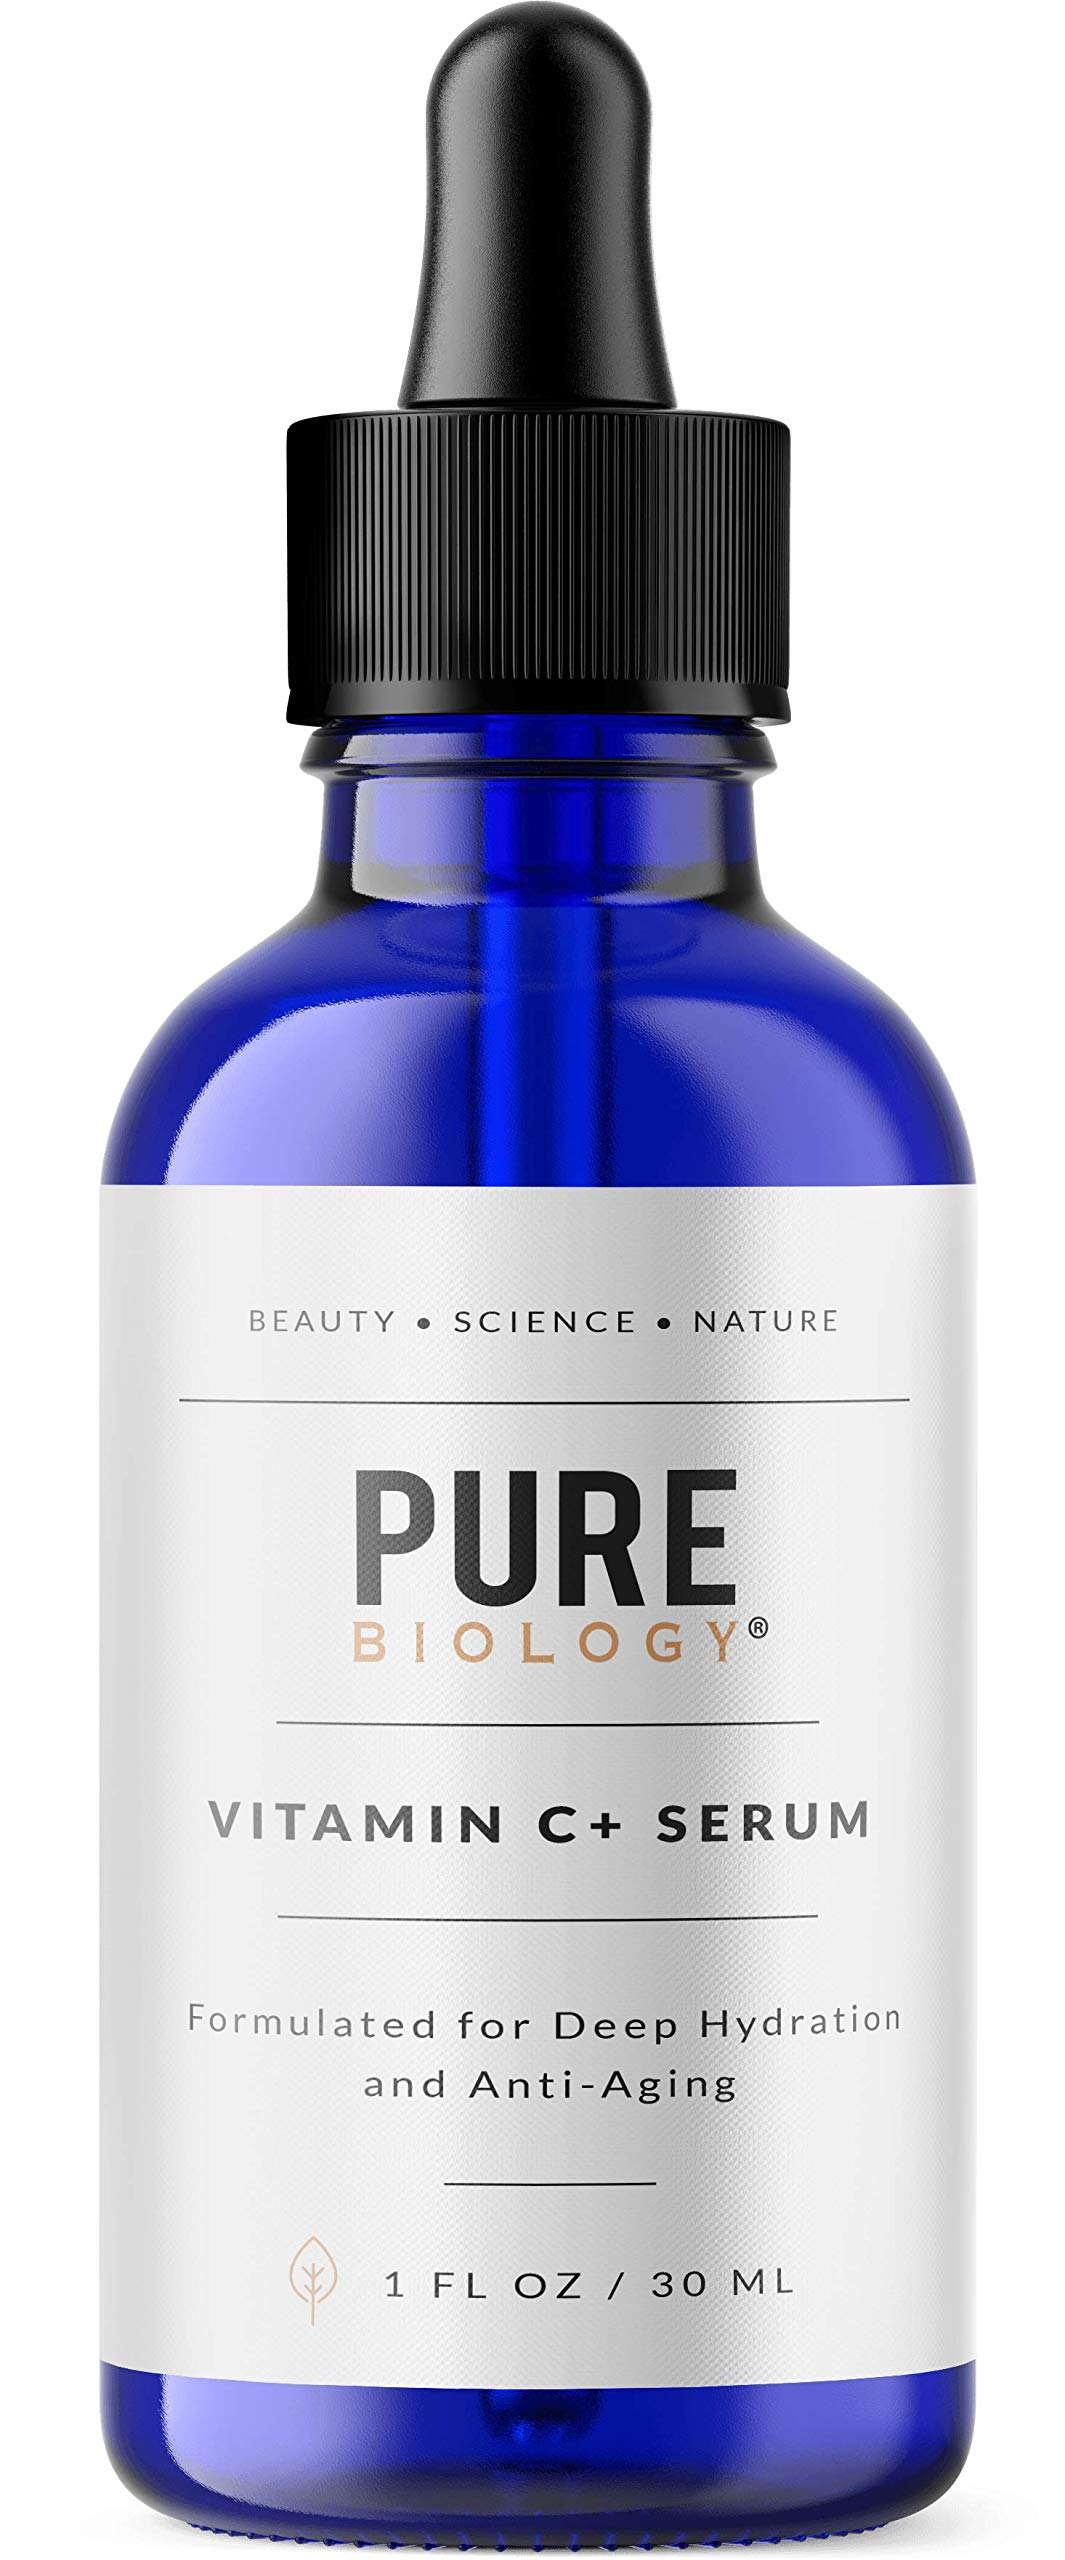 Pure Biology Premium Vitamin C Serum (30%) with Hyaluronic Acid, Vitamin E & Anti Aging Complex to Smooth Wrinkles & Brighten Skin Tone for Men & Women, 1 OZ